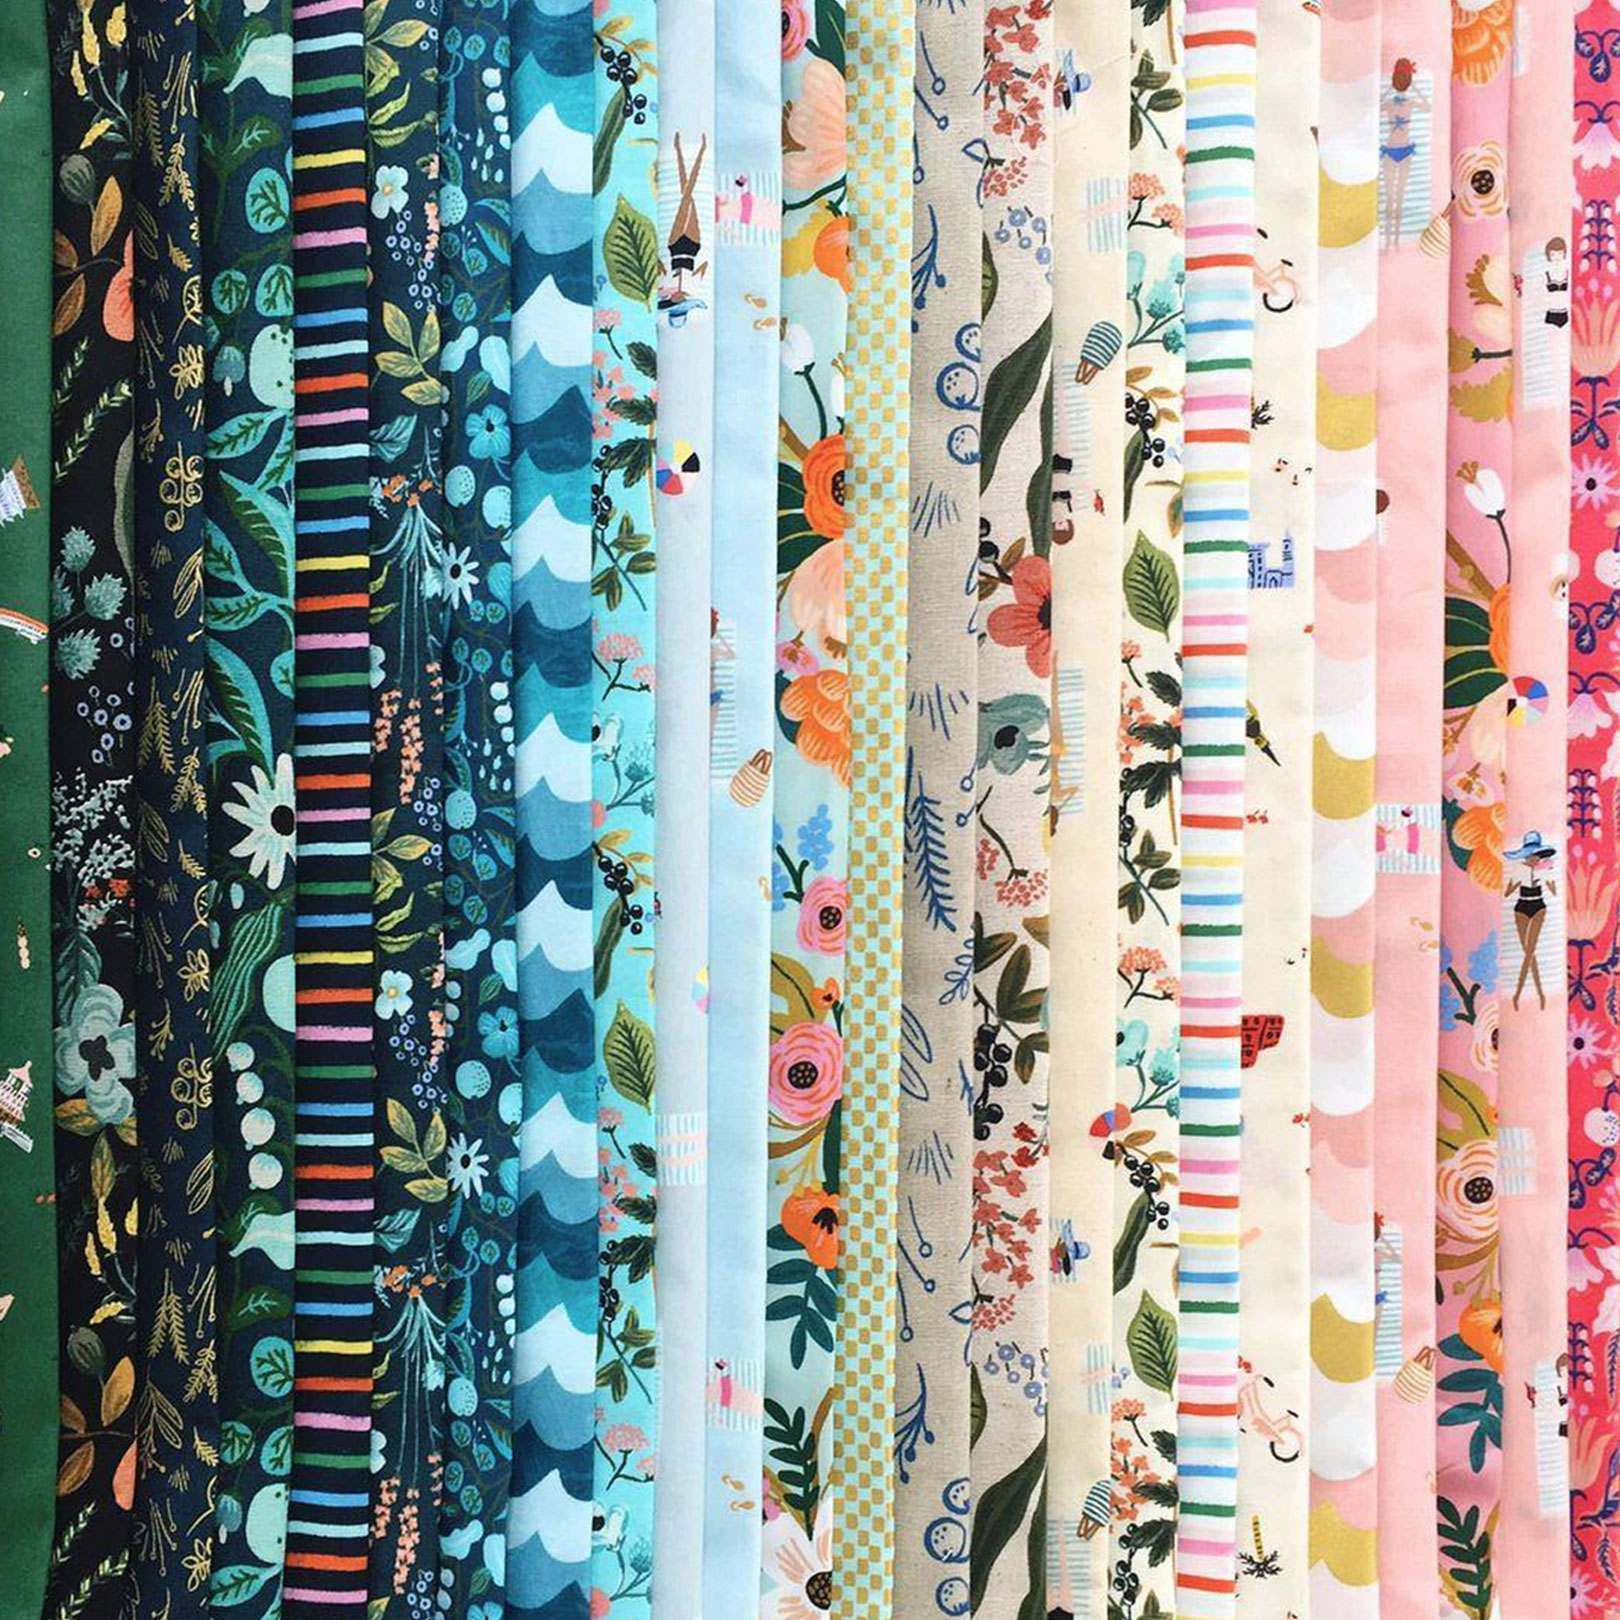 Fabric Image 2 Fabric stores online, Fabric, Home